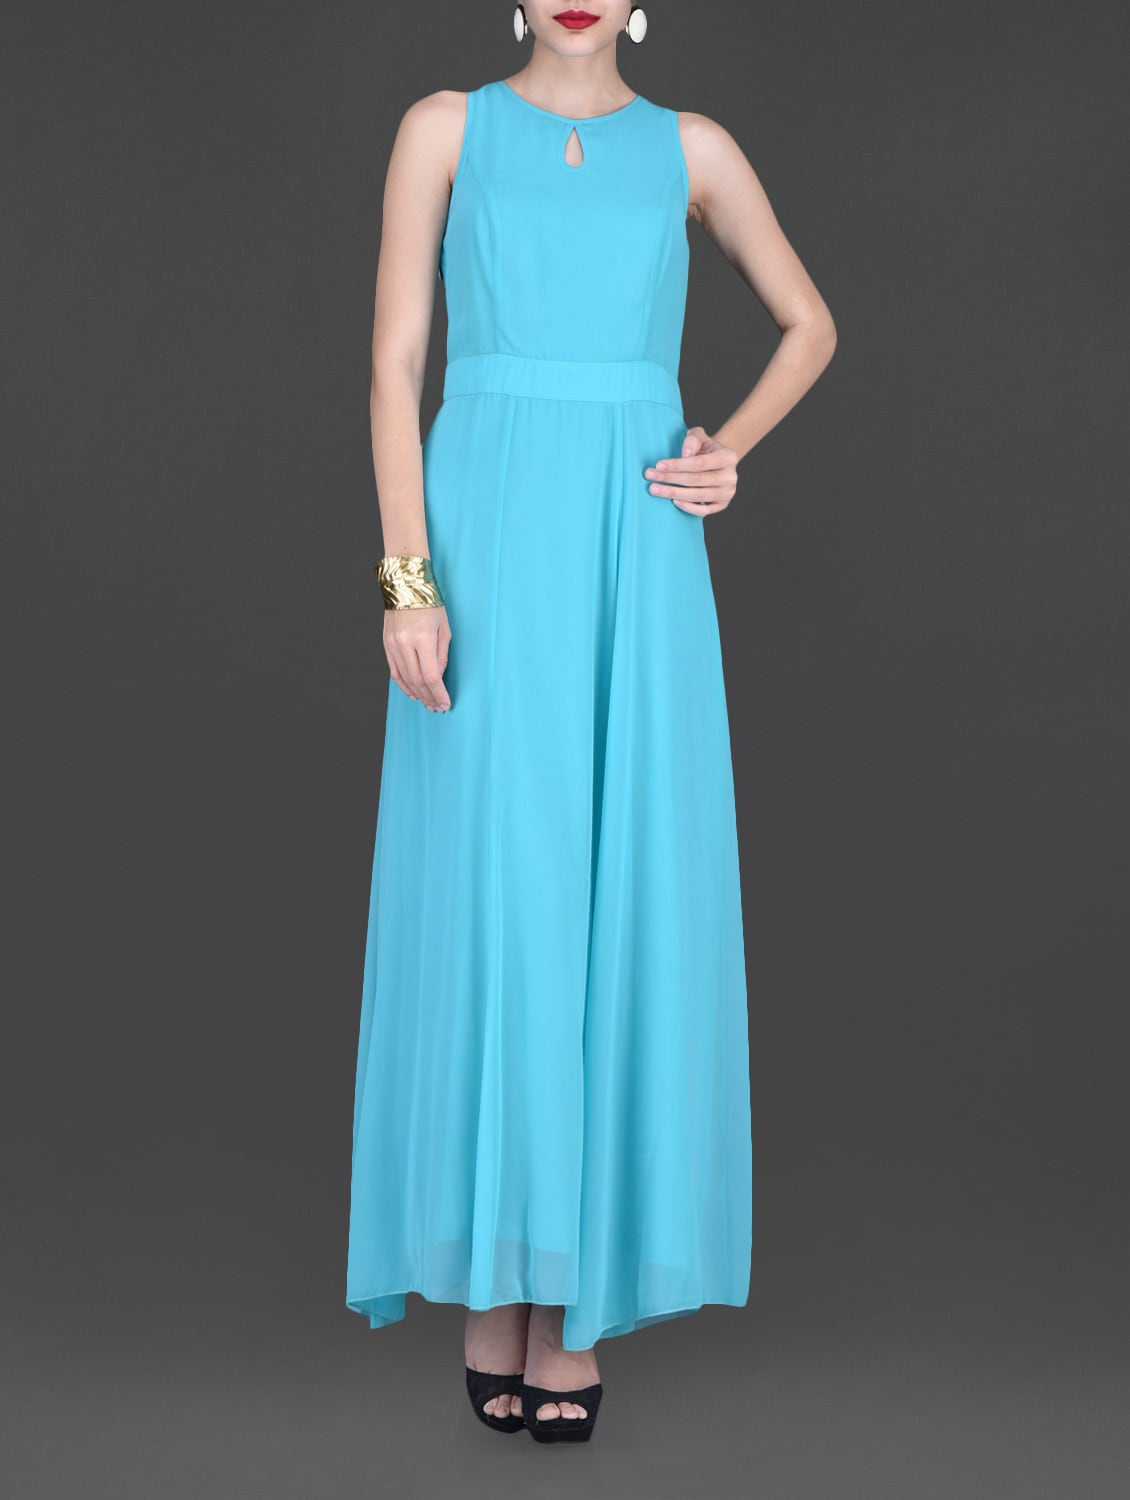 Sky Blue Sleeveless Maxi Dress - By